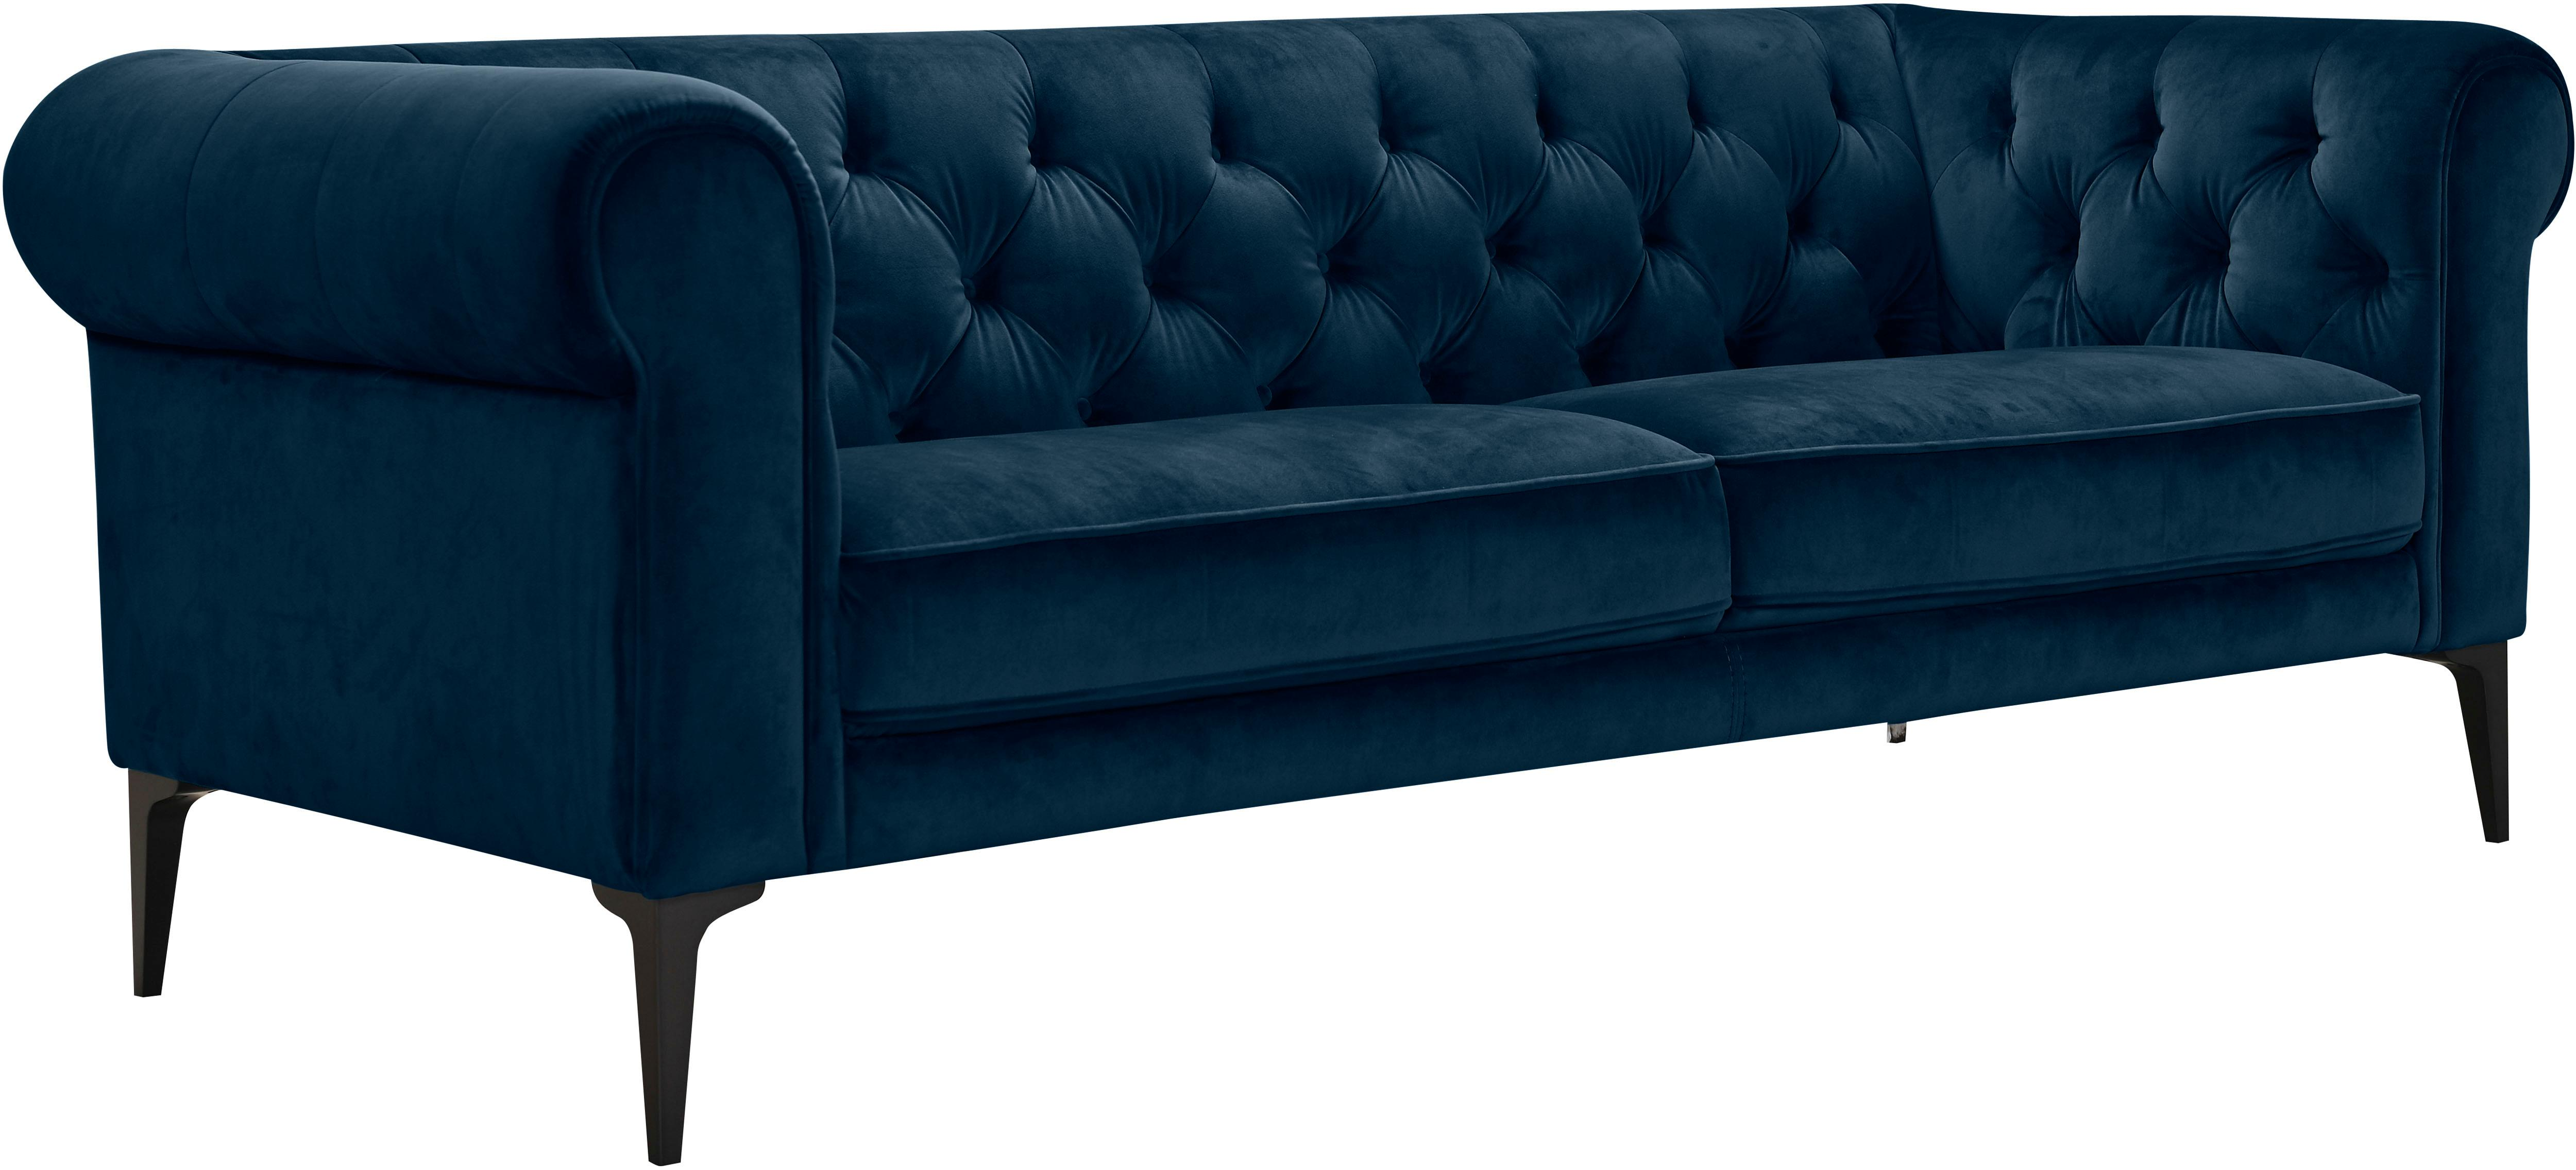 Premium collection by Home affaire Chesterfield-Sofa »Tobol« | Wohnzimmer > Sofas & Couches > Chesterfield Sofas | Premium collection by Home affaire